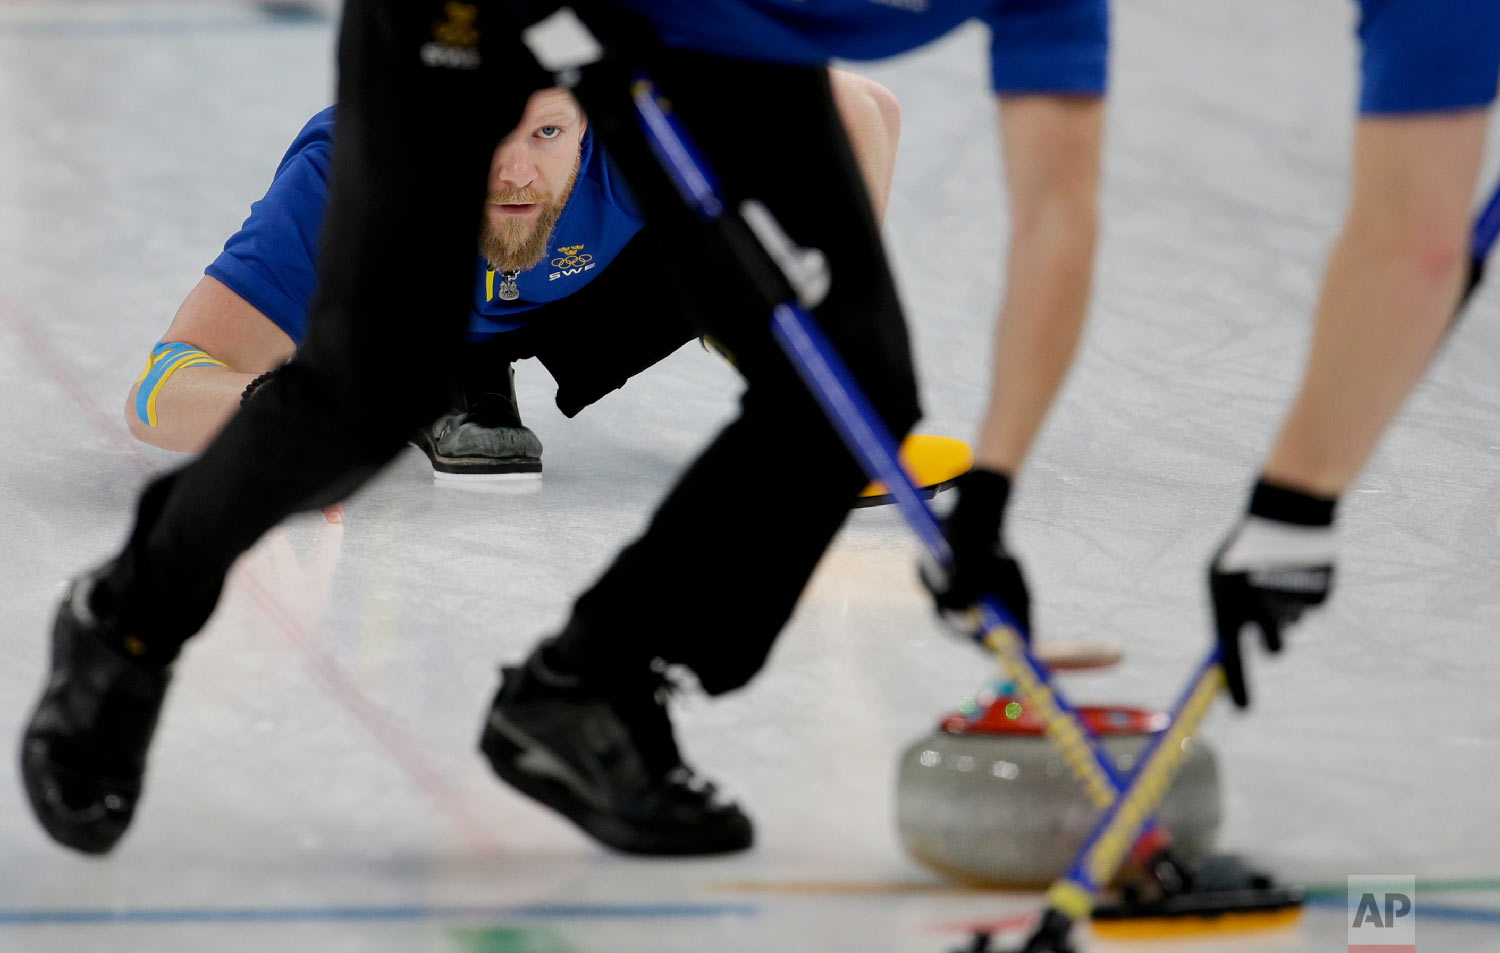 Sweden's skip Niklas Edin watches his teammates sweep the ice during the men's final curling match against United States at the 2018 Winter Olympics in Gangneung, South Korea, Saturday, Feb. 24, 2018. (AP Photo/Natacha Pisarenko)